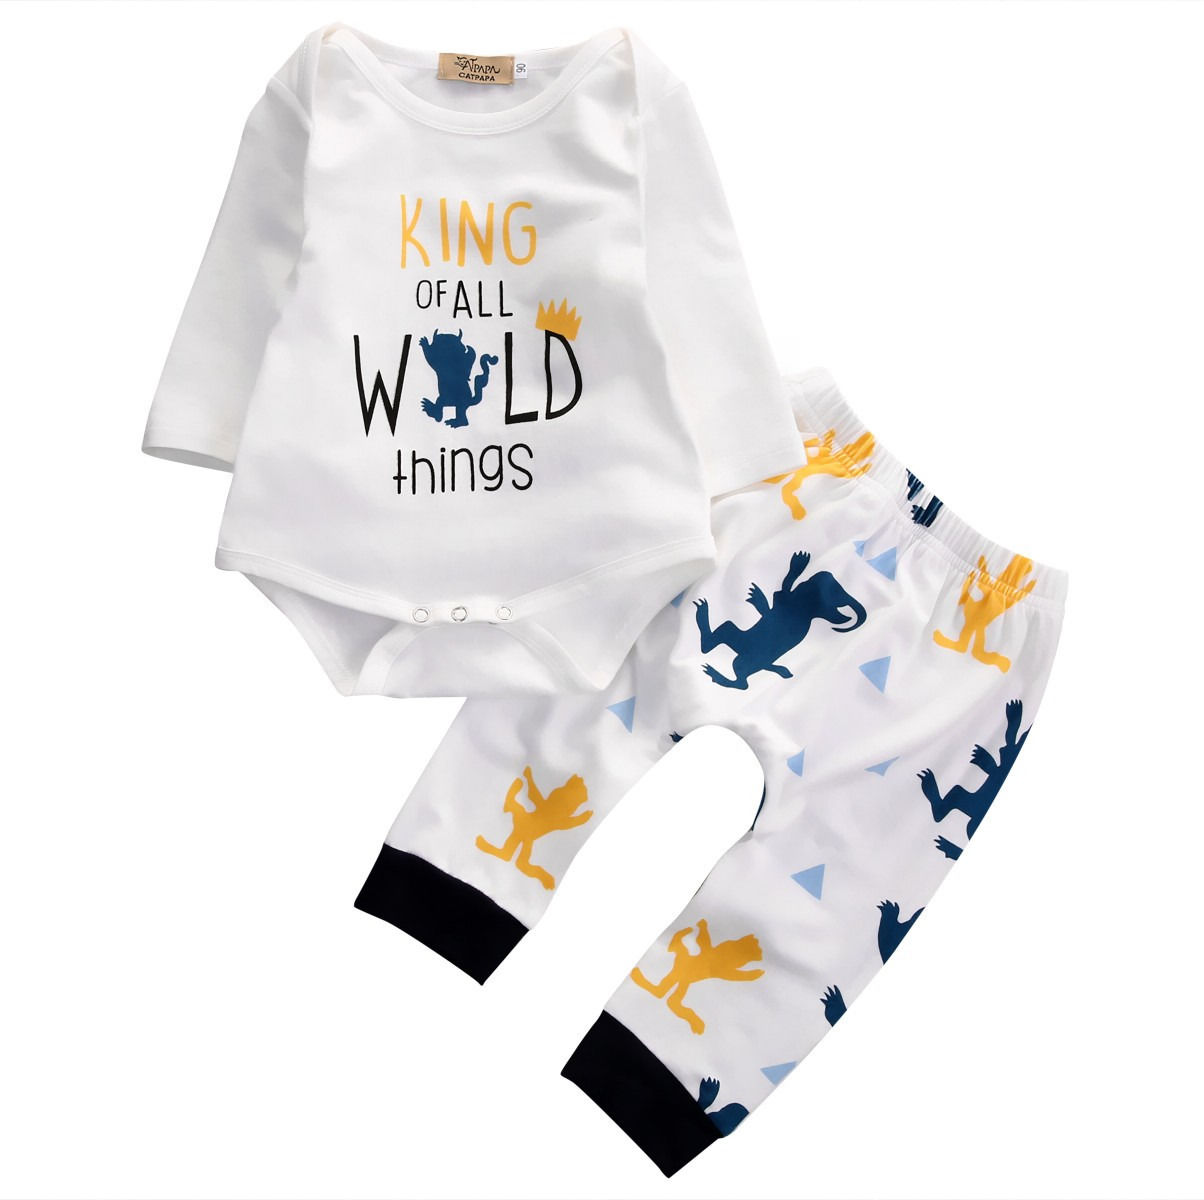 18e967482 2016 Autumn Fashion baby Boys clothes Baby Boys Long Sleeve Romper Pants  Leggings Outfits 2PCS Set newborn baby boy clothing set-in Clothing Sets  from ...